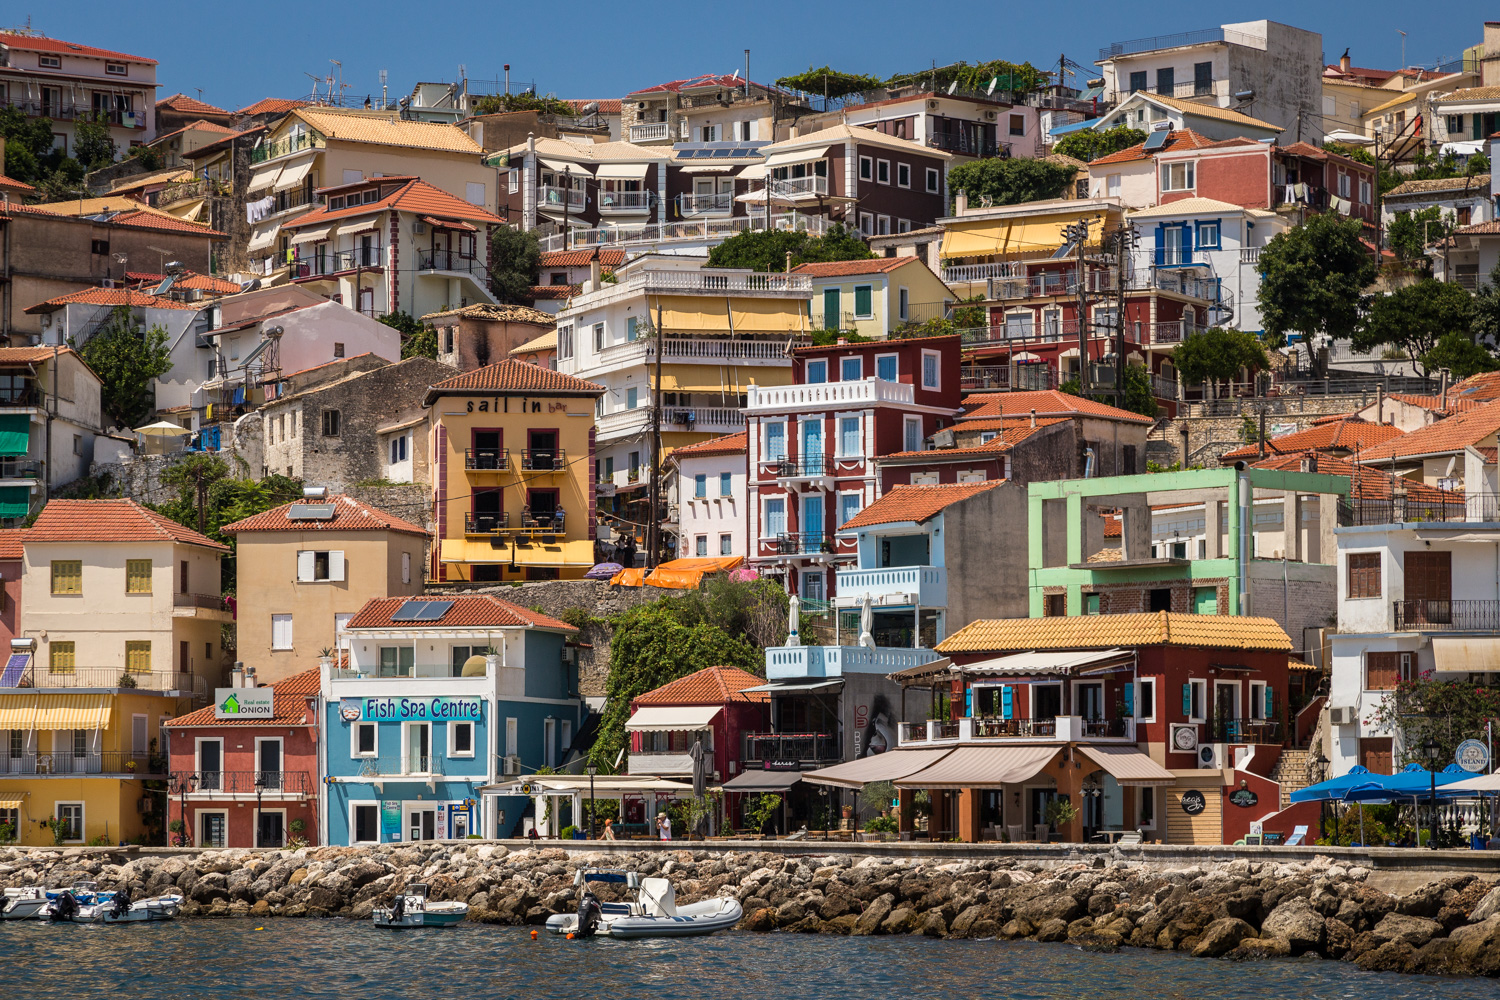 The colourful buildings of Parga, Greece by Travel Photographer Rick McEvoy